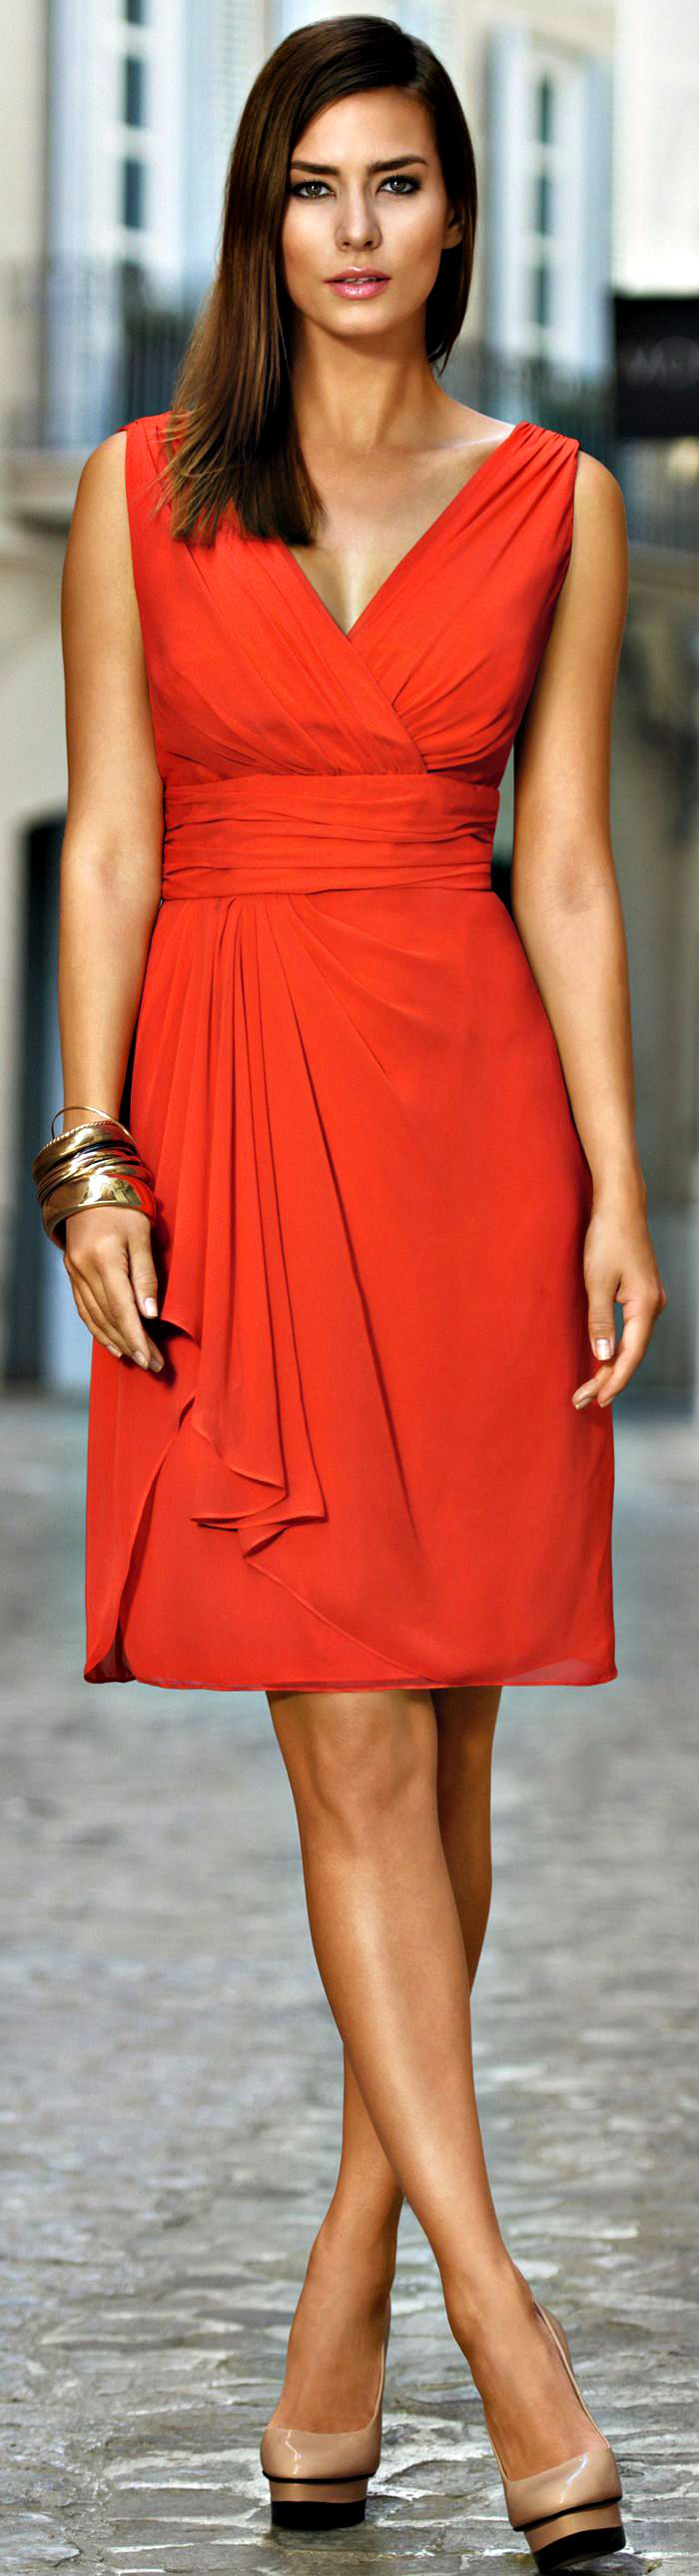 25  best ideas about Cruise formal wear on Pinterest | Cruise ...